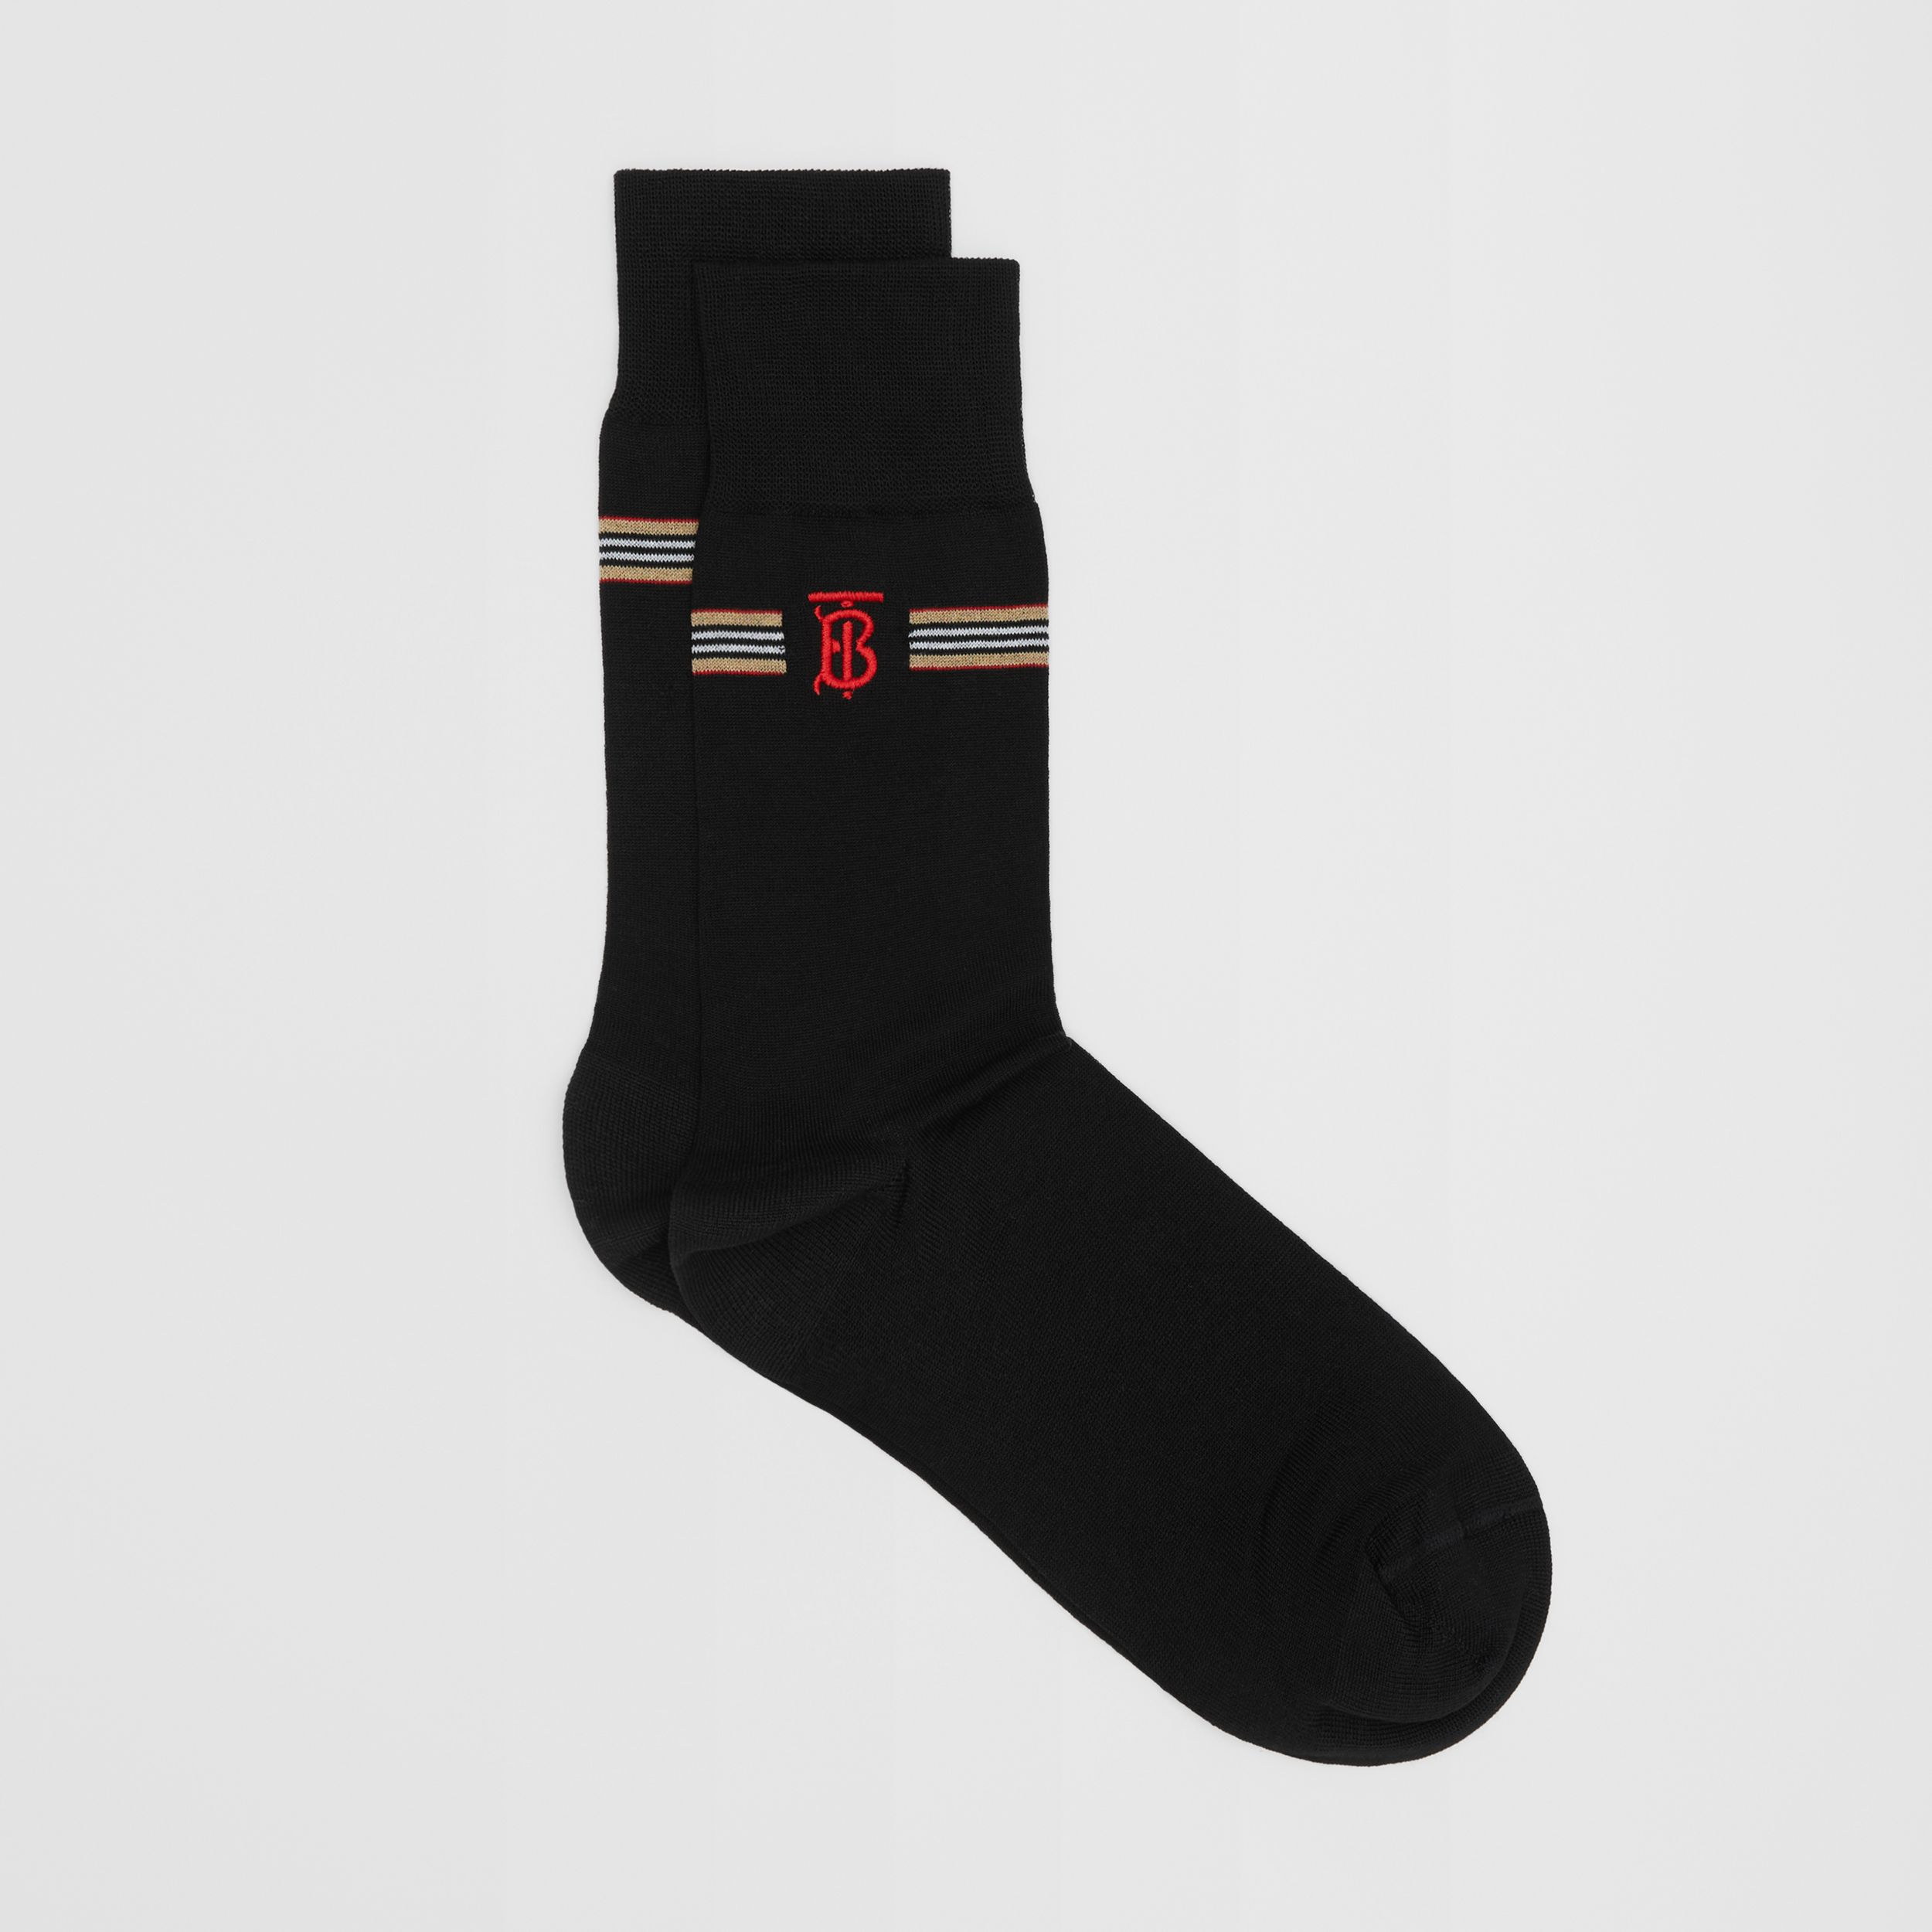 Icon Stripe and Monogram Motif Cotton Blend Socks in Black | Burberry - 3